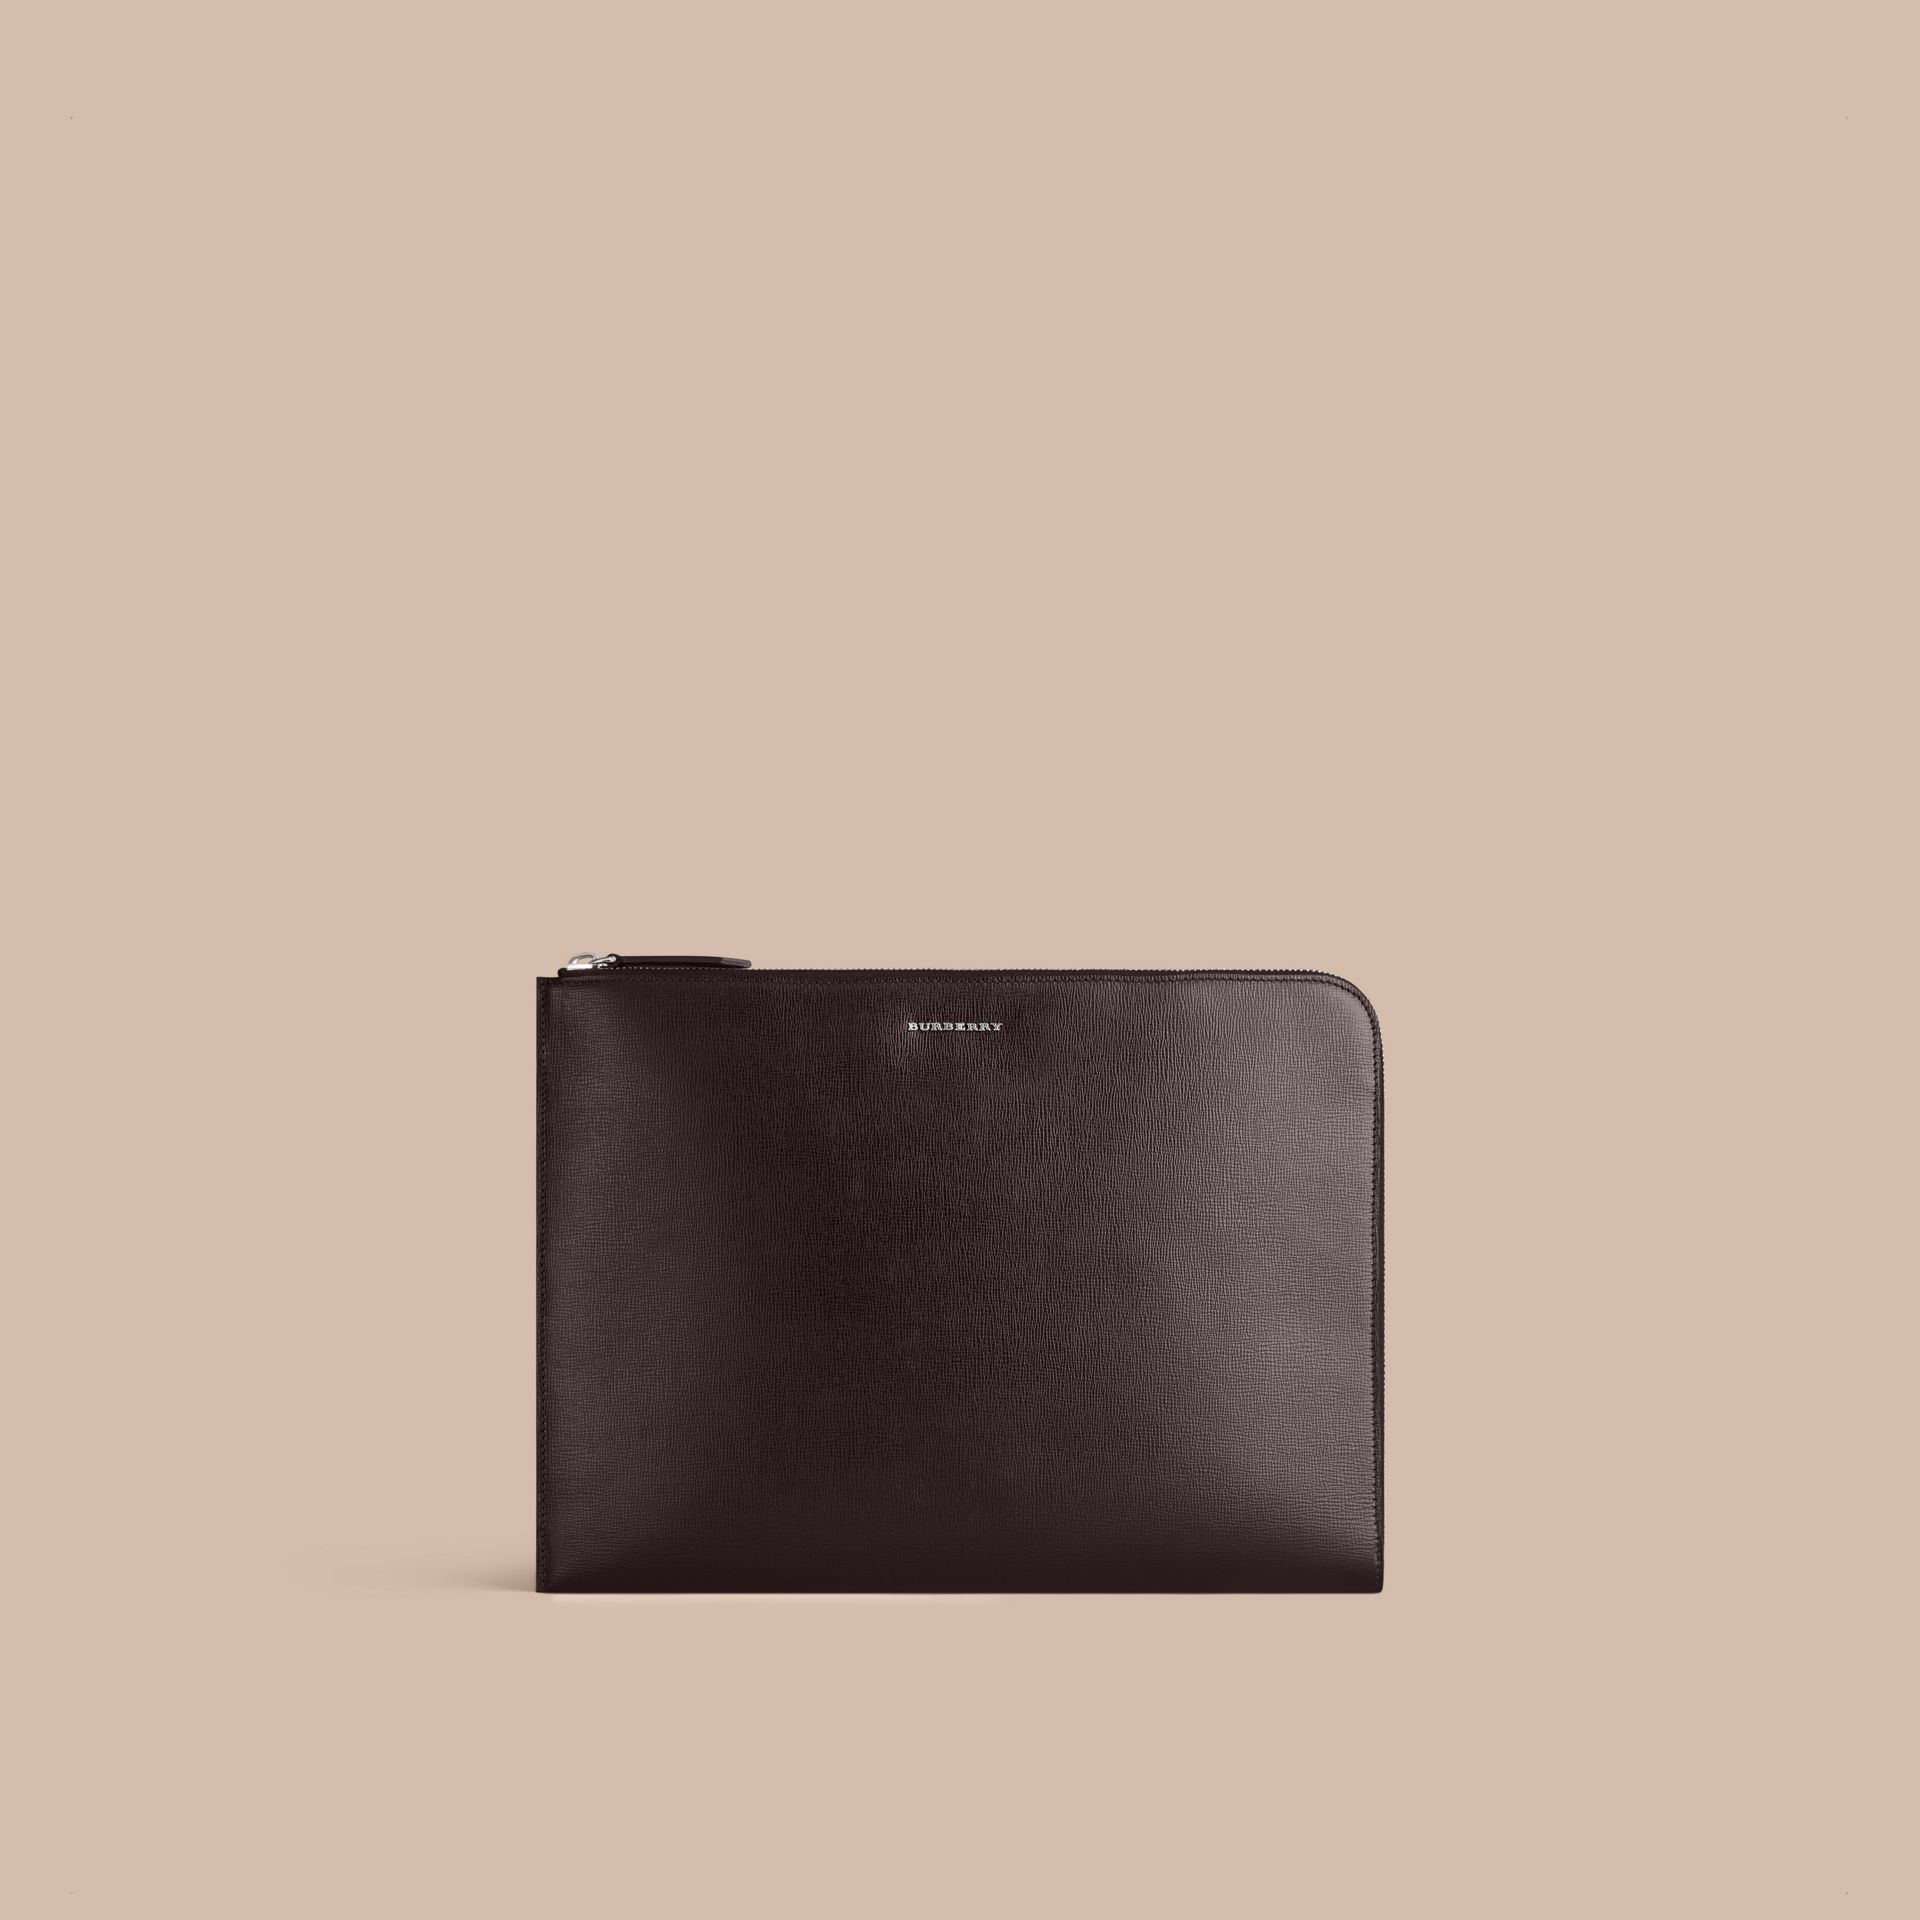 Black London Leather Document Case Black - gallery image 1